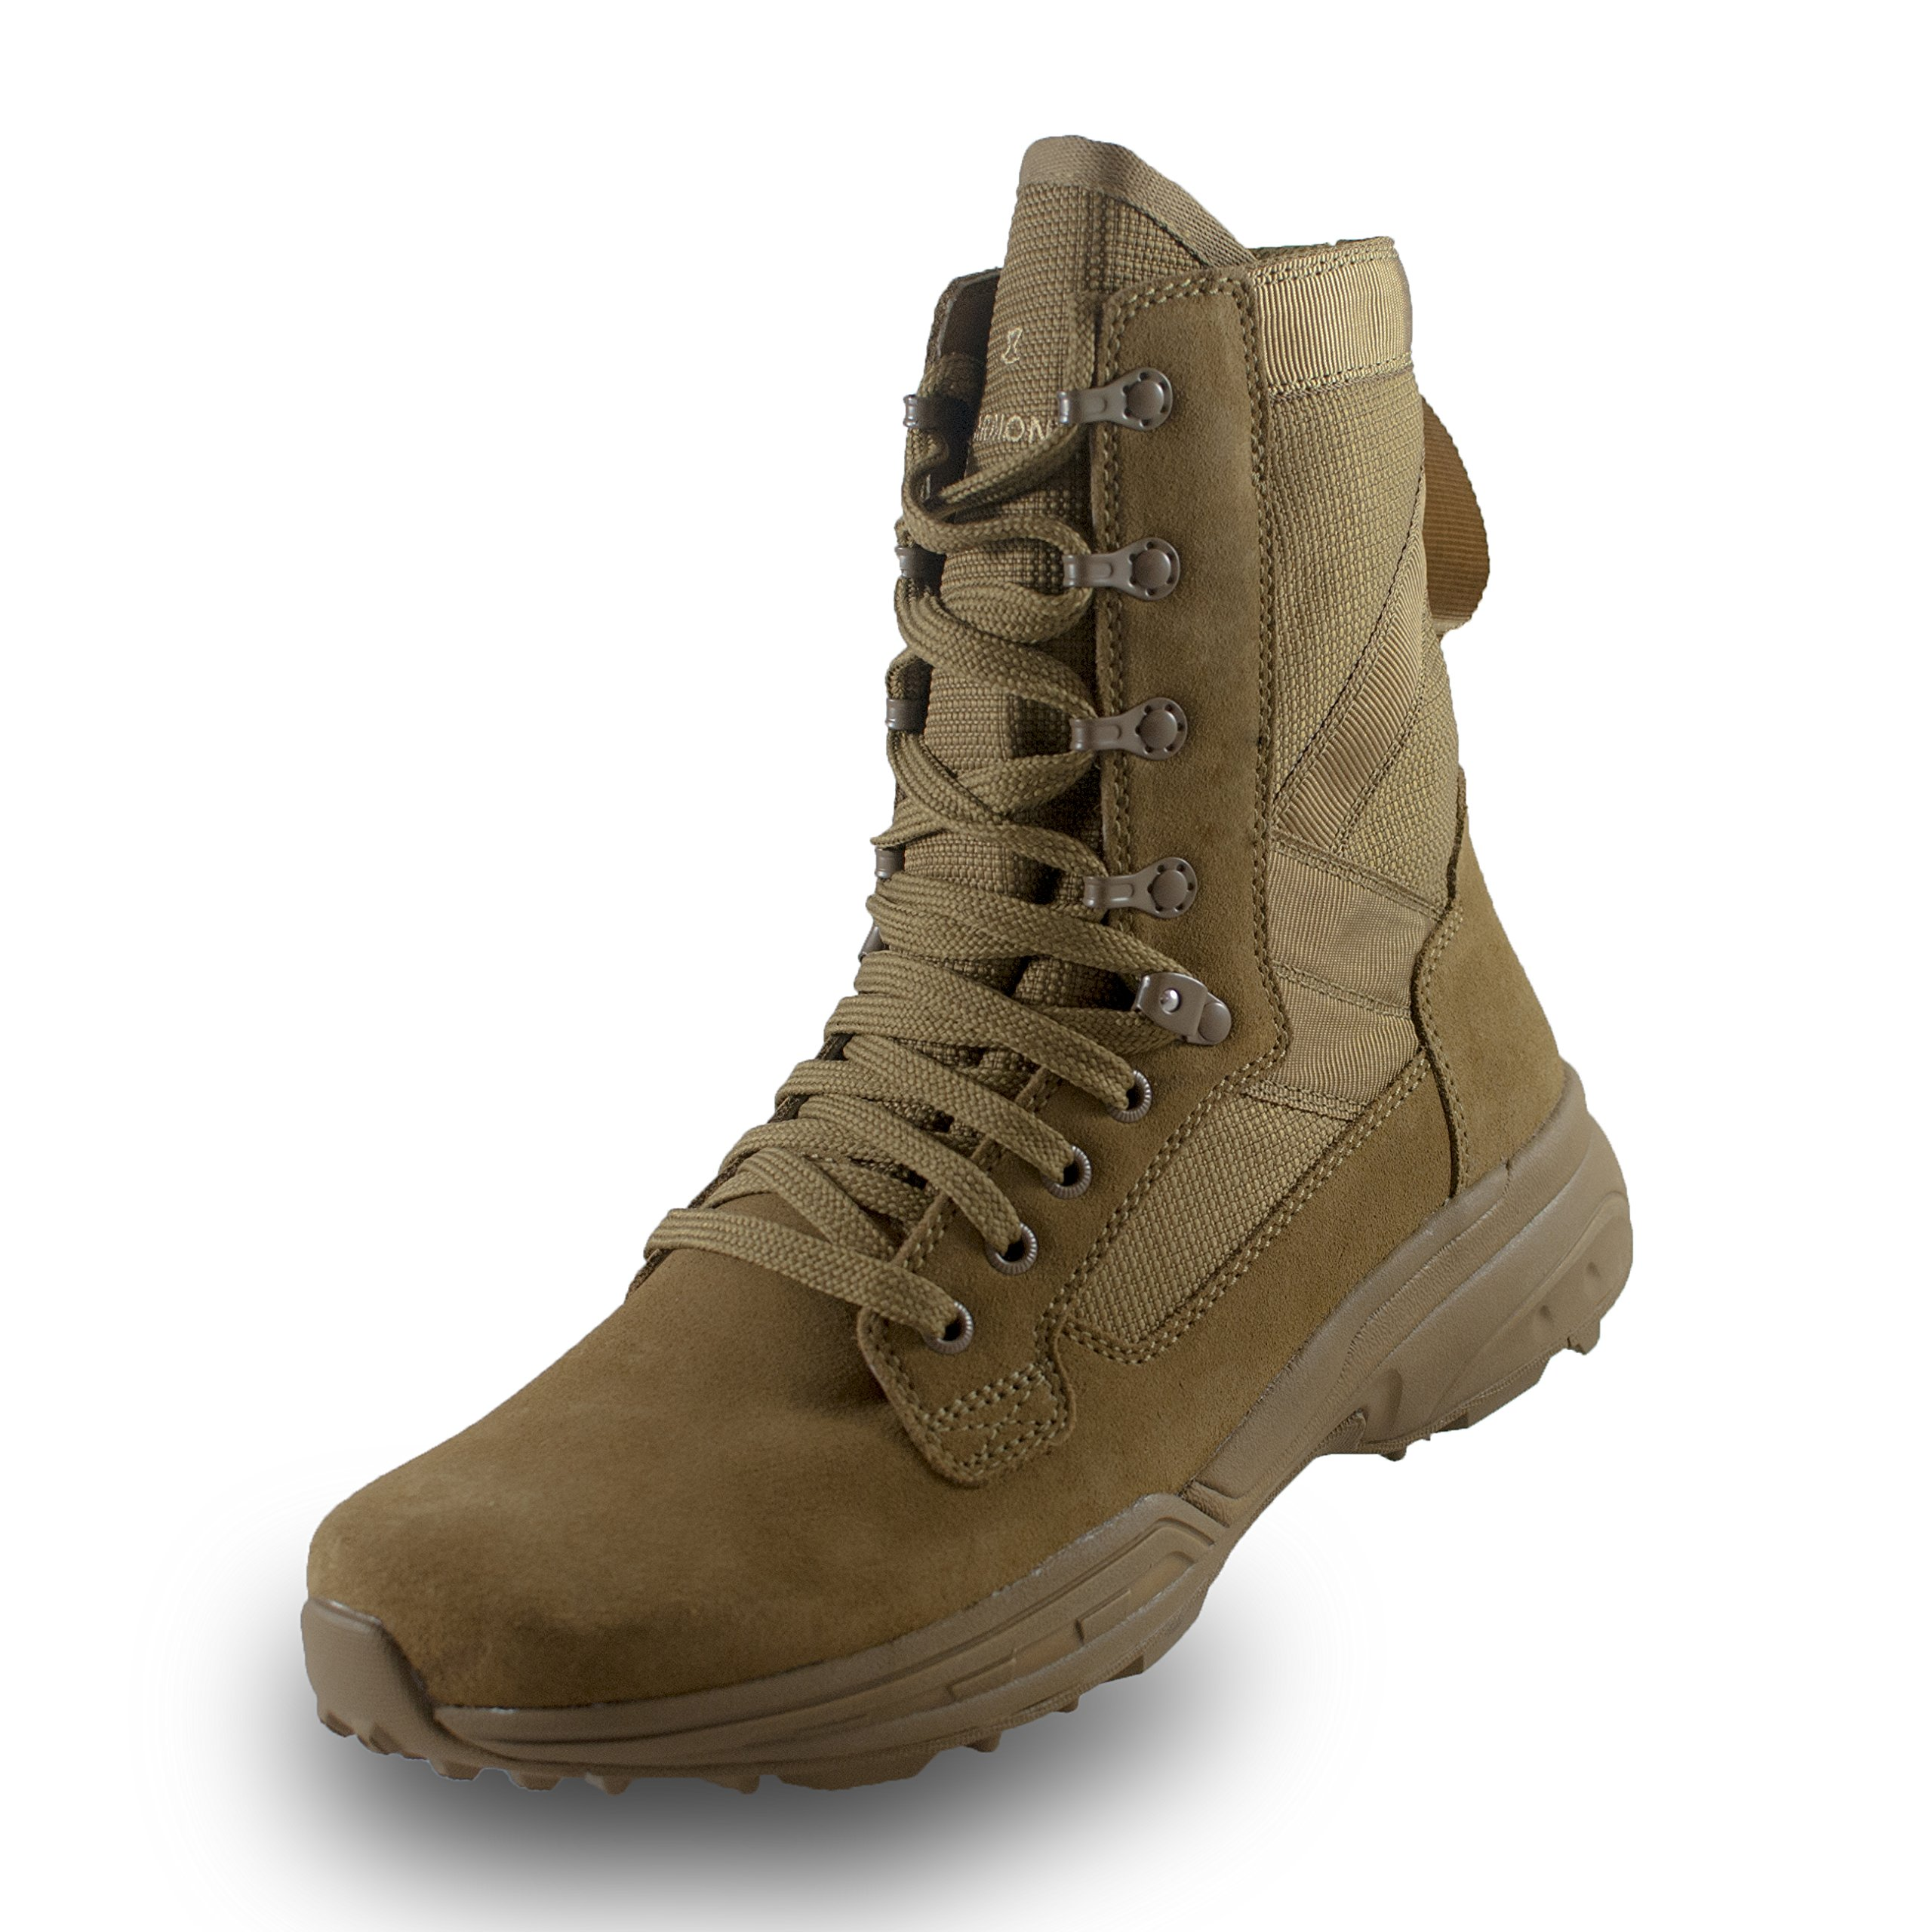 Garmont T8 NFS Tactical Boot - Coyote, 10 M US